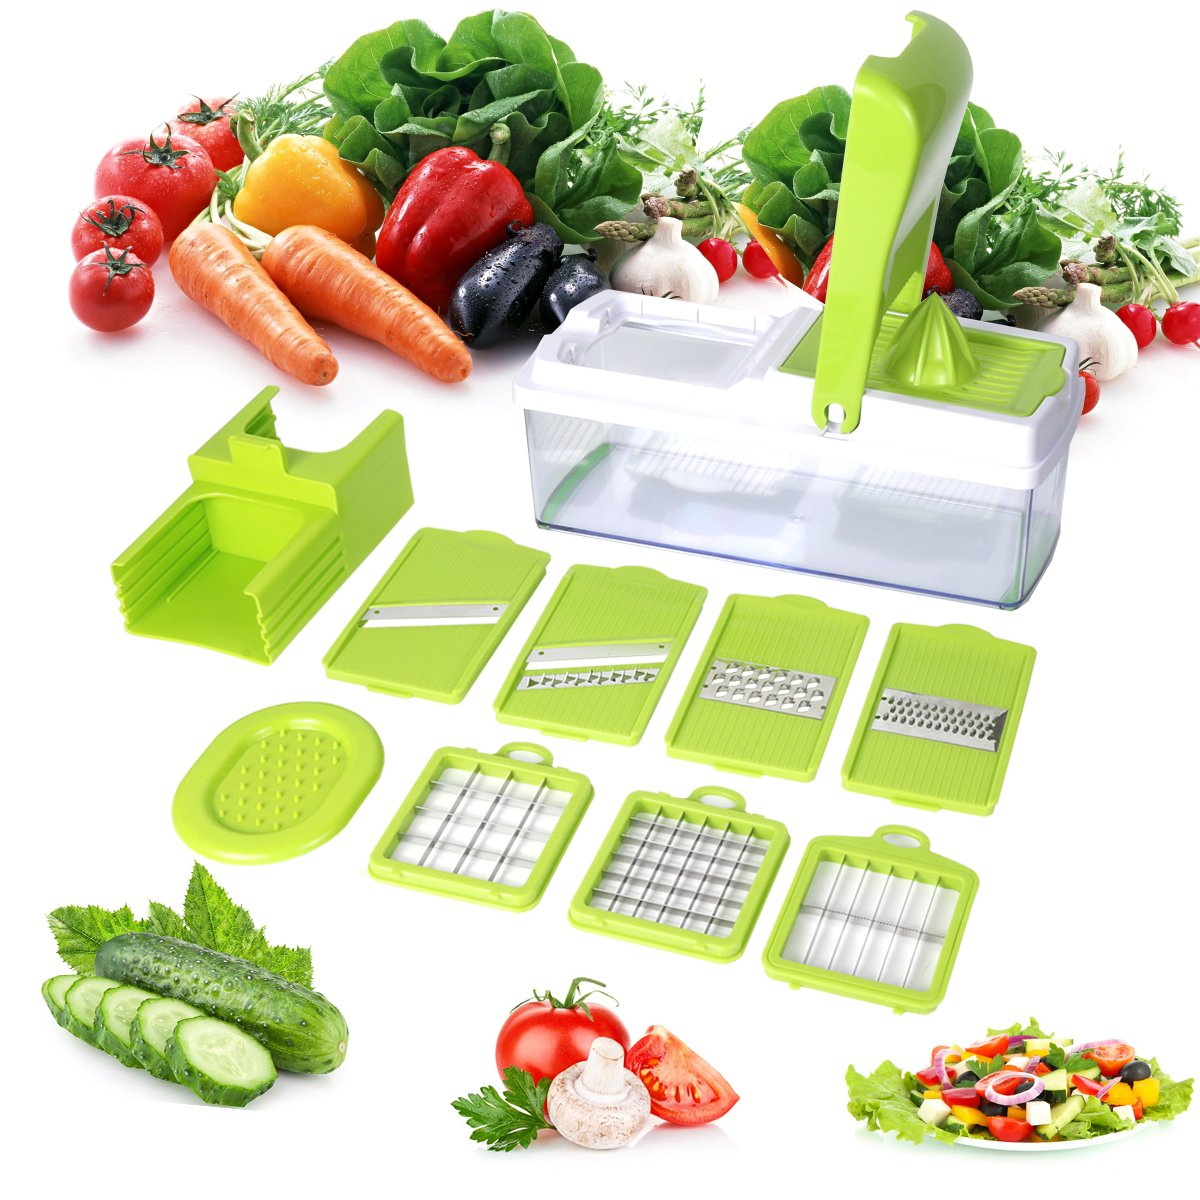 Mandoline 10 in 1 Food Cutter Slicer and shredder - Slices and Shreds Fruits and Vegetables Chopper, Food Container, Safety Food Holder, All-in-One Vegetable Cutter Vegetable Slic, Easter Day Gift Duomishu